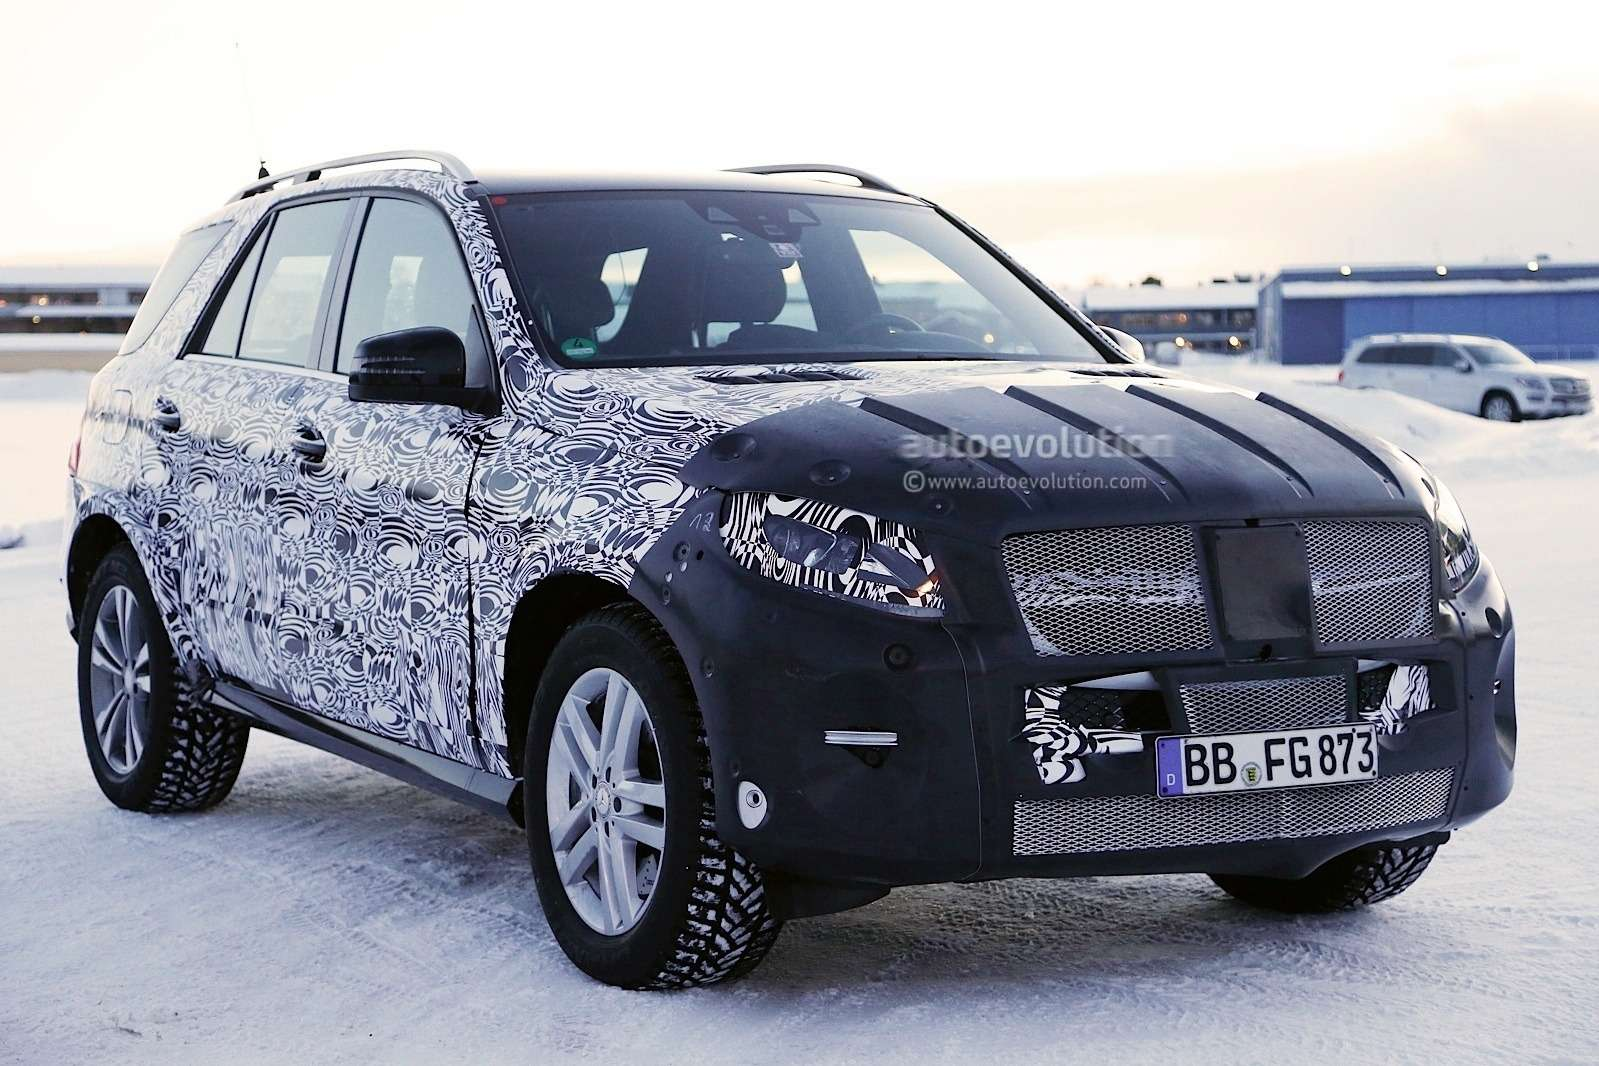 2015 mercedes benz m class facelift spied in lapland photo gallery 1080p 10 no copyright